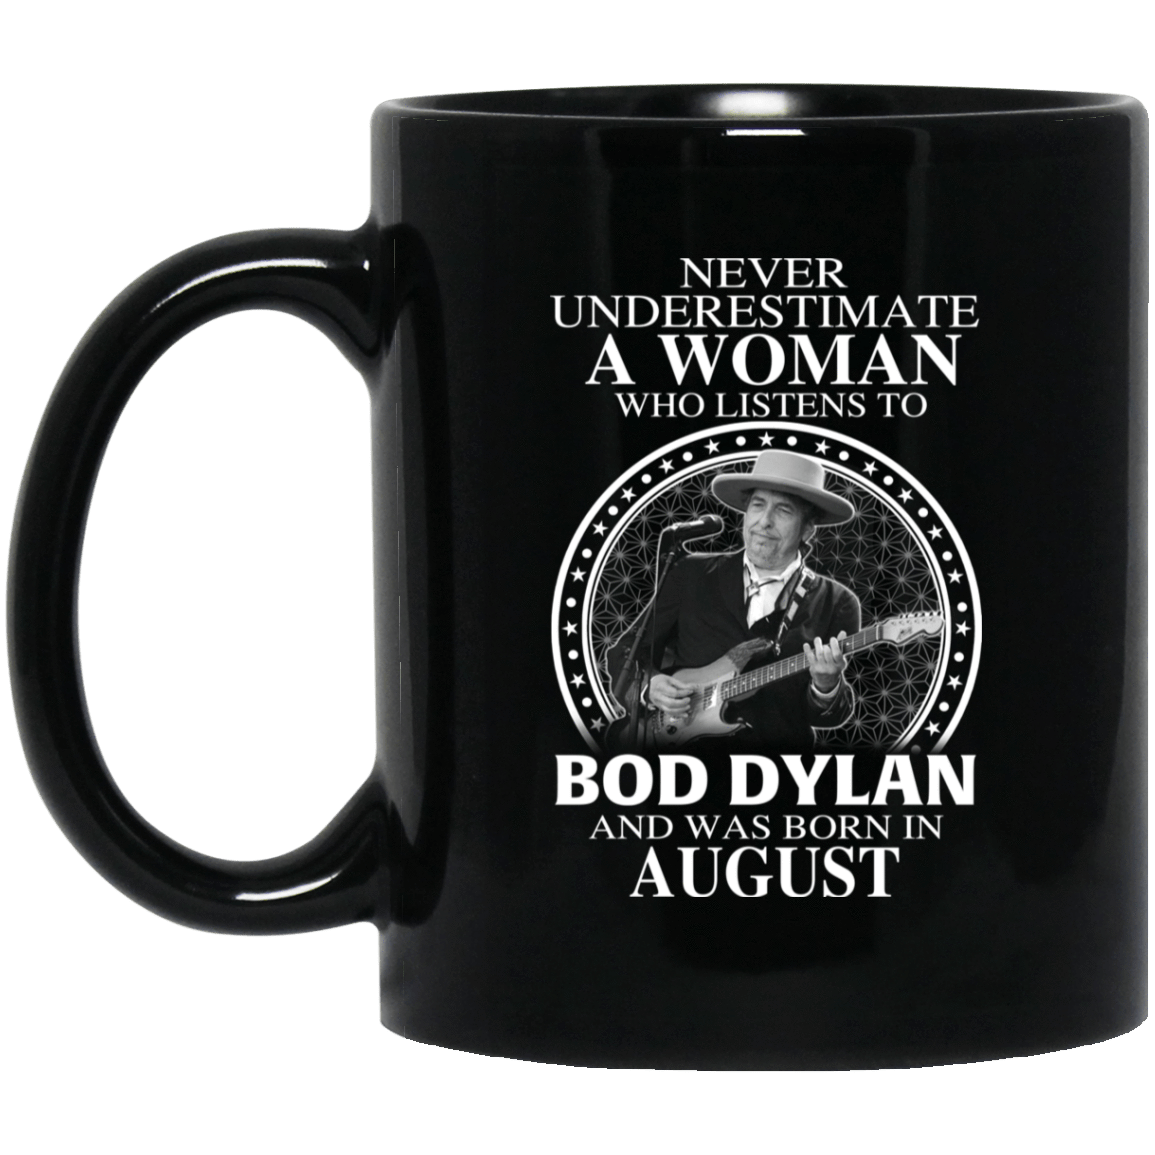 A Woman Who Listens To Bob Dylan And Was Born In August Mug 1065-10181-76154531-49307 - Tee Ript